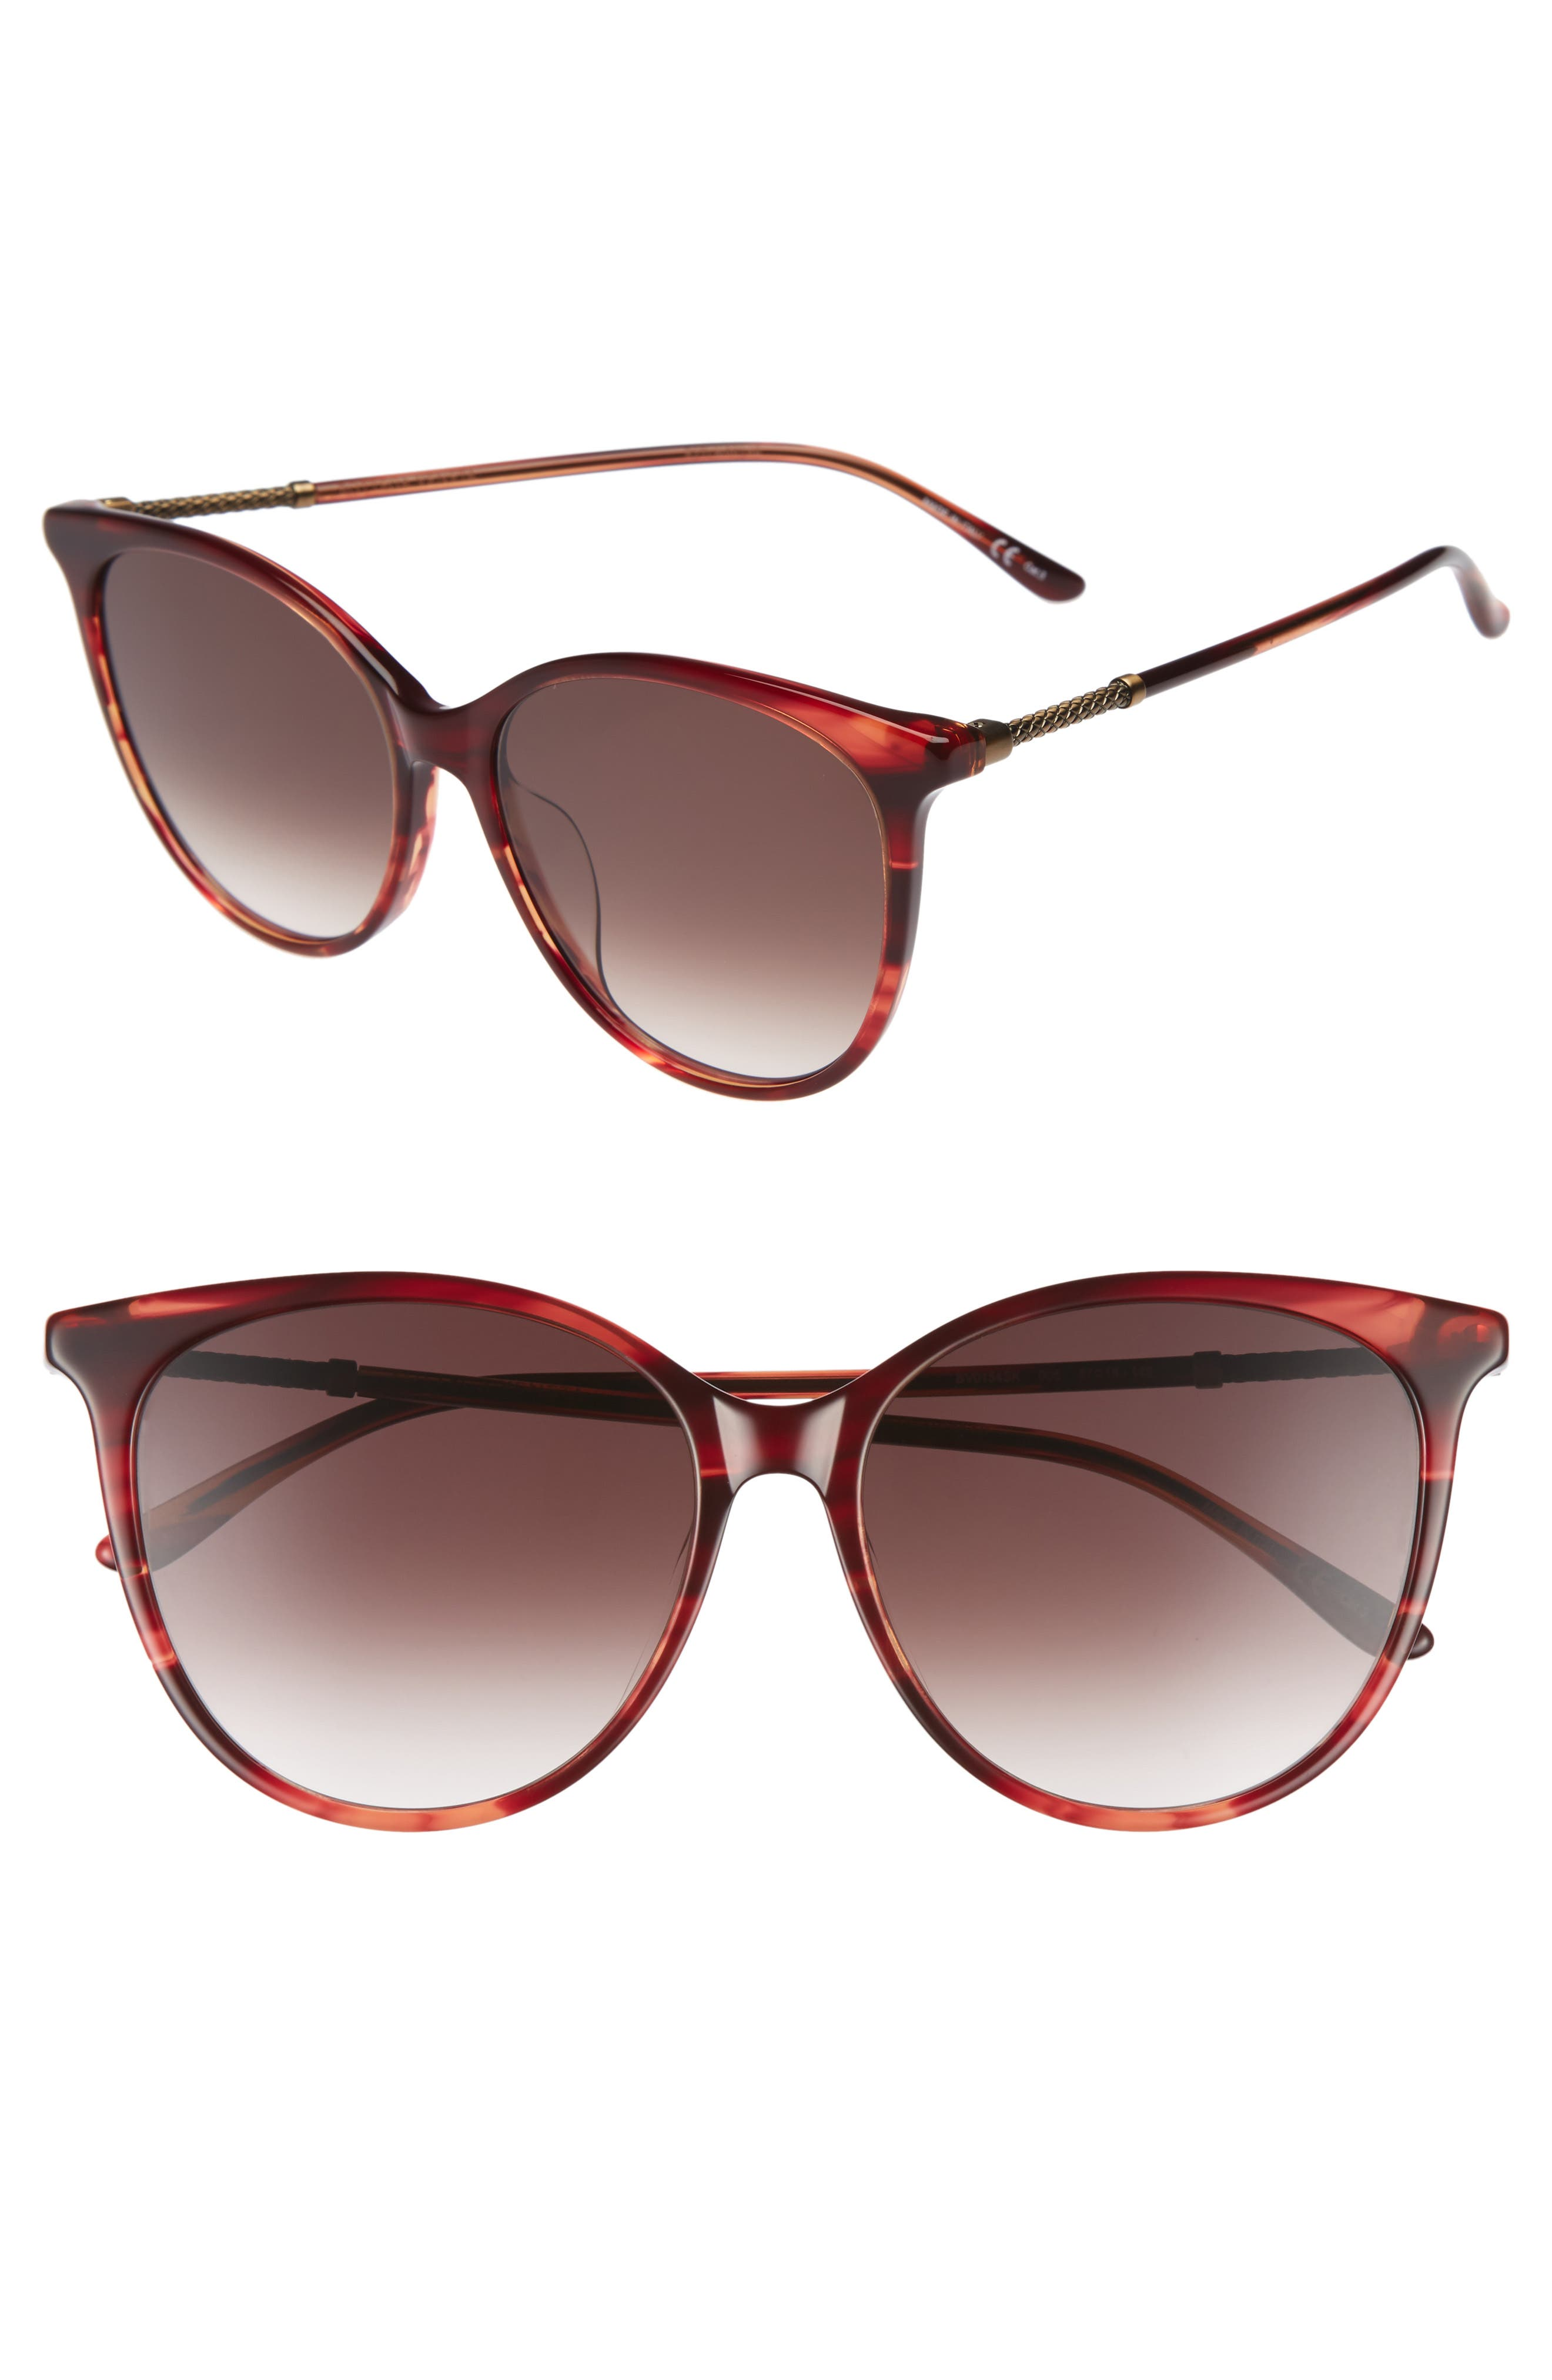 Bottega Veneta 57mm Cat Eye Sunglasses